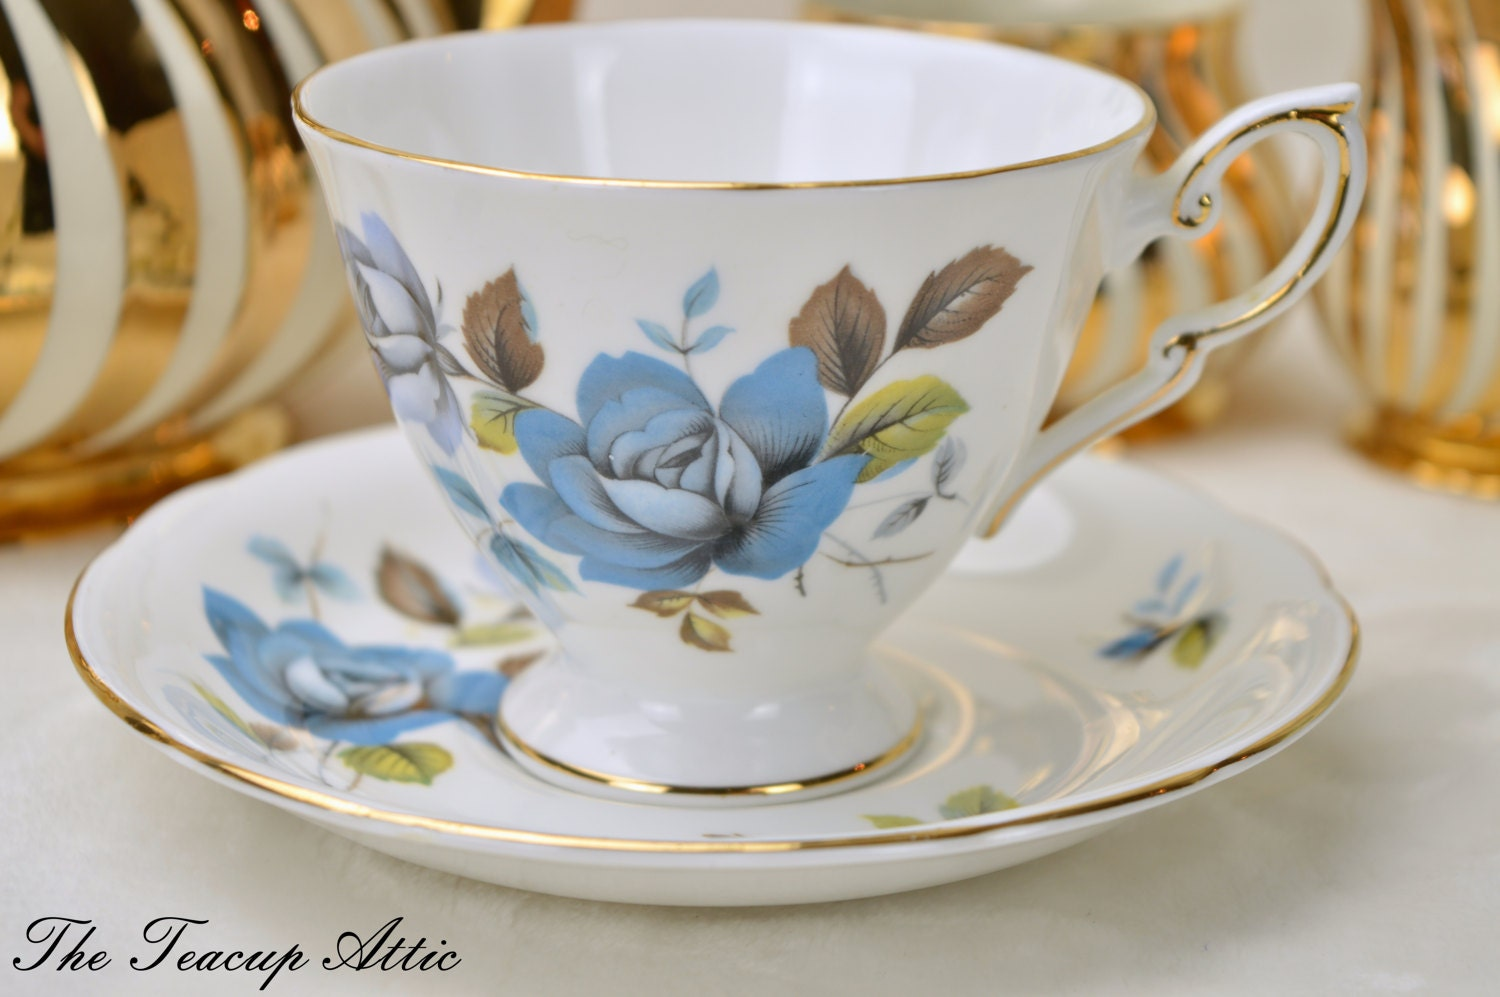 Royal Standard Teacup and Saucer With Blue Roses, English Bone China Tea Cup Set, Wedding Gift,  ca. 1949-